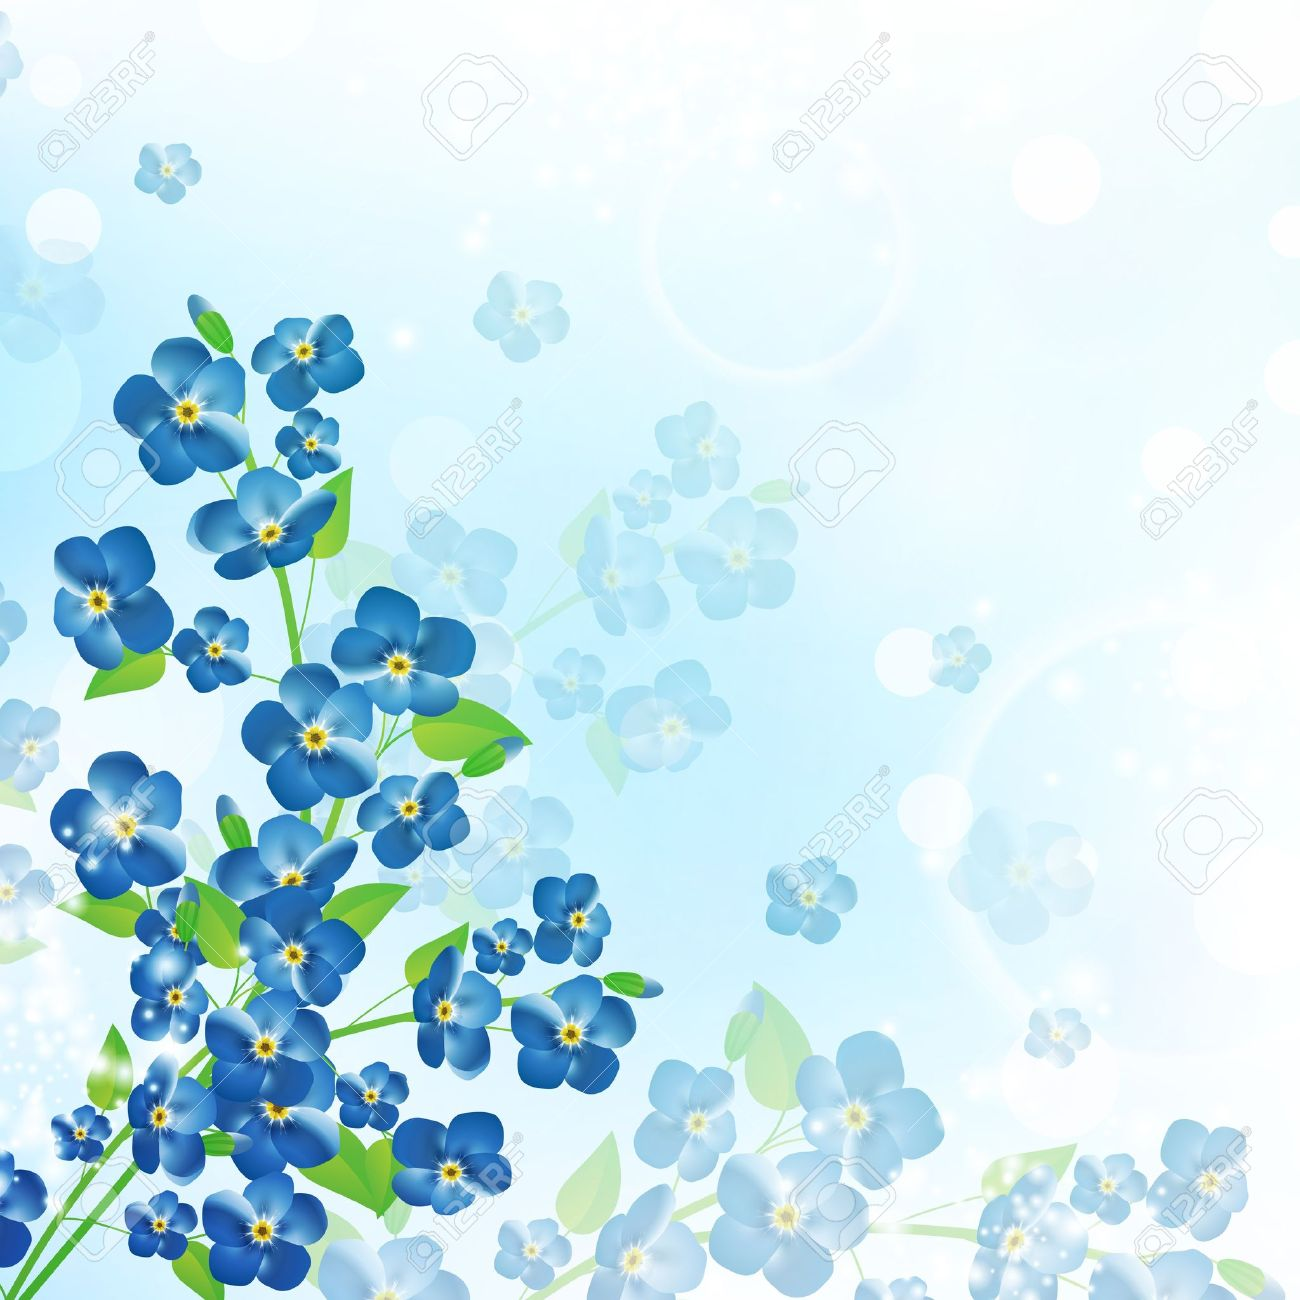 Forget-Me-Not clipart #8, Download drawings